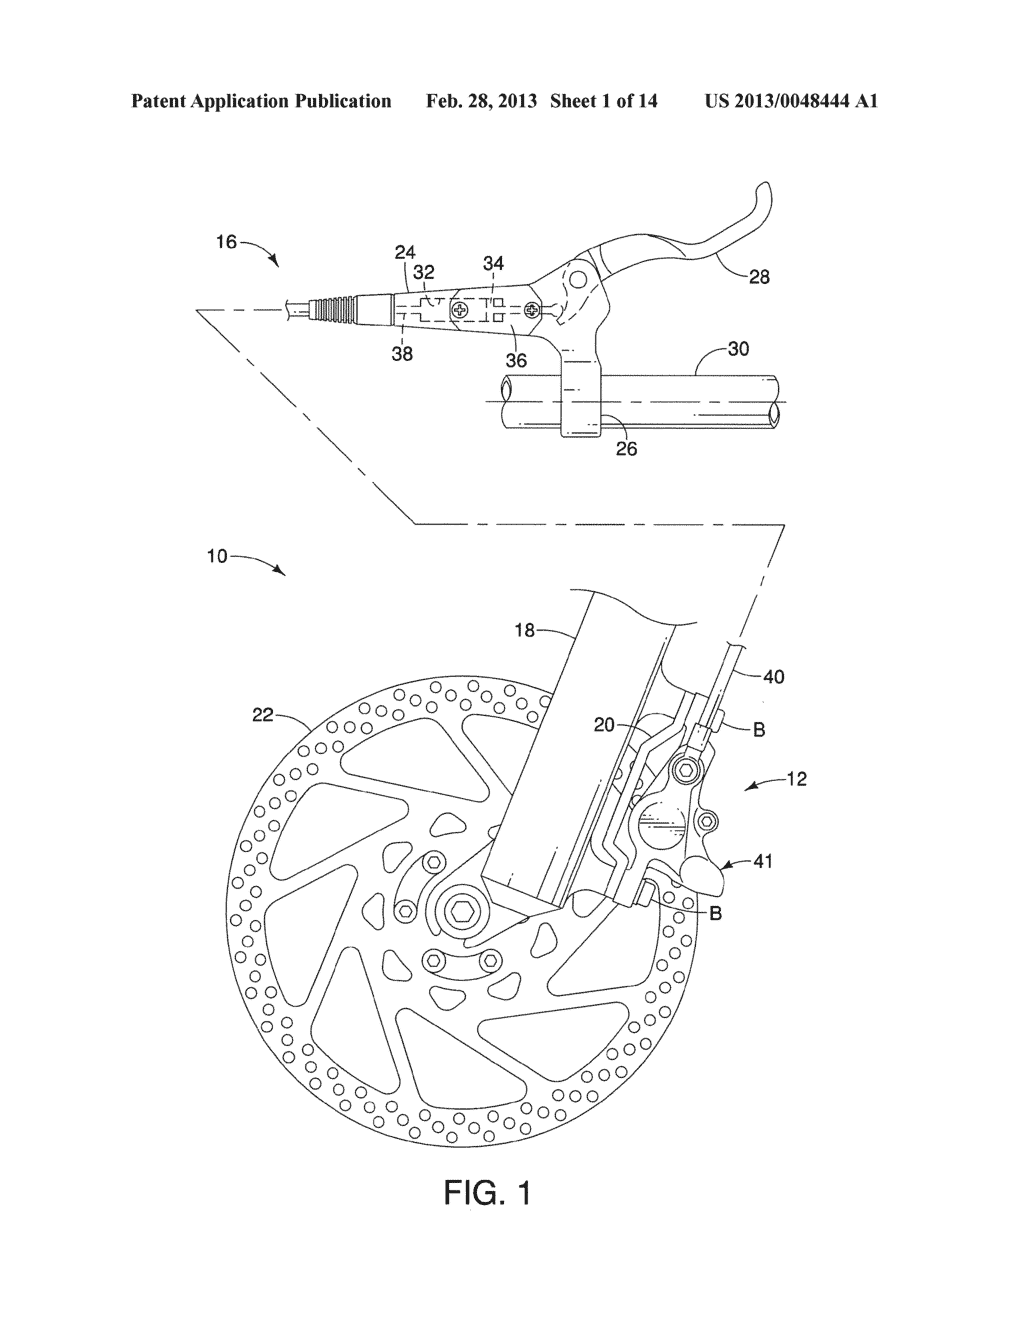 Bicycle Disc Brake Caliper Diagram Schematic And Image 02